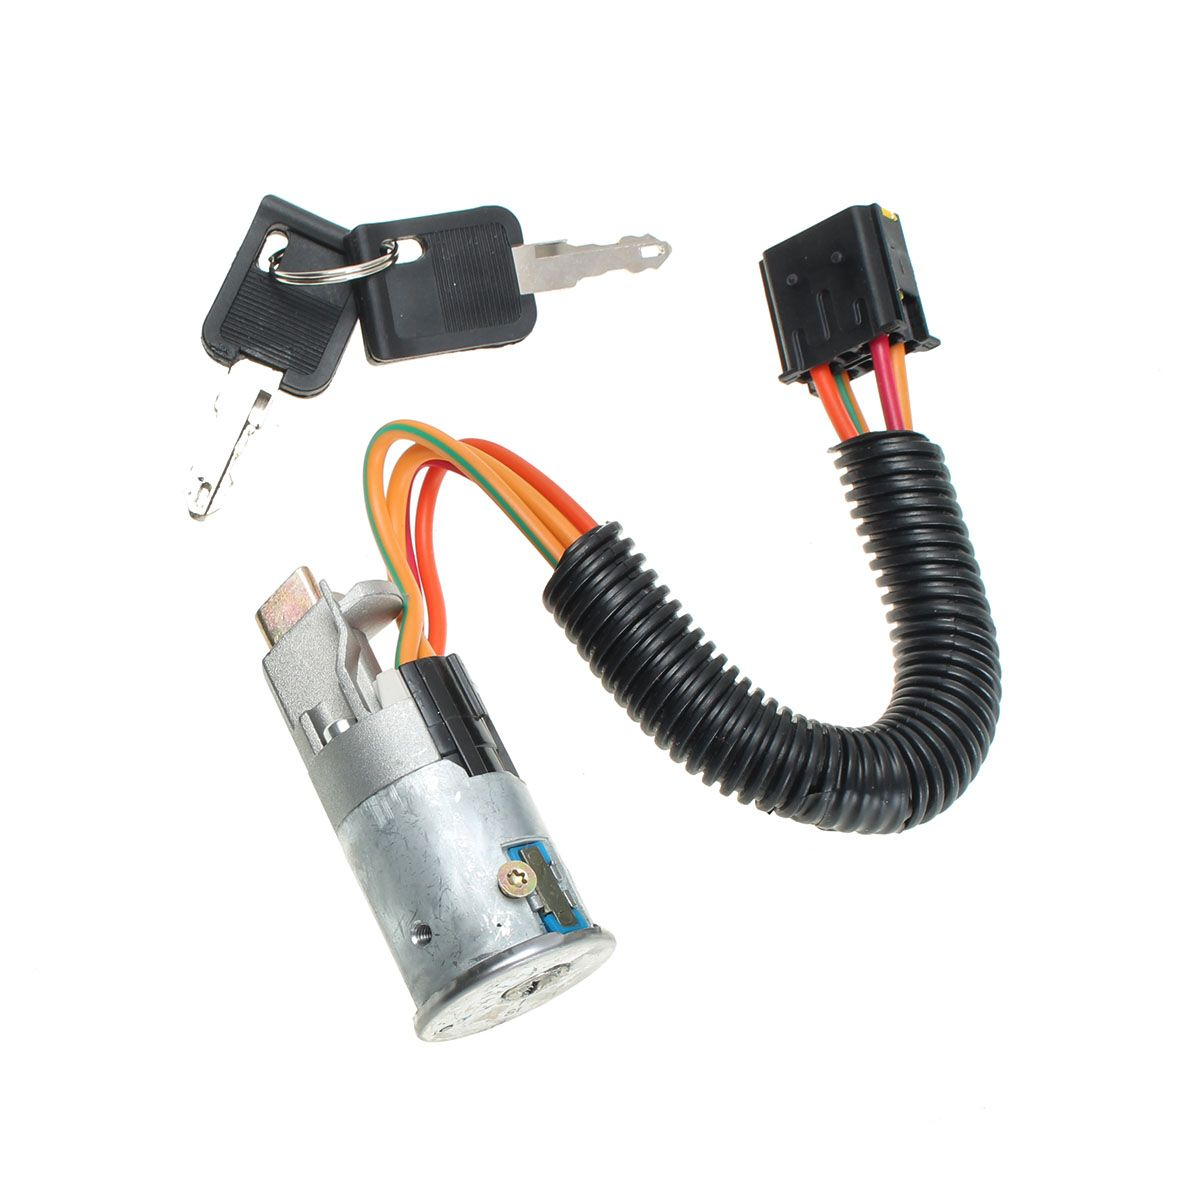 New Ignition Lock Switch Barrel + 2 Keys For RENAULT 1998-2005 /CLIO /MK2 /MEGANE /SCENIC